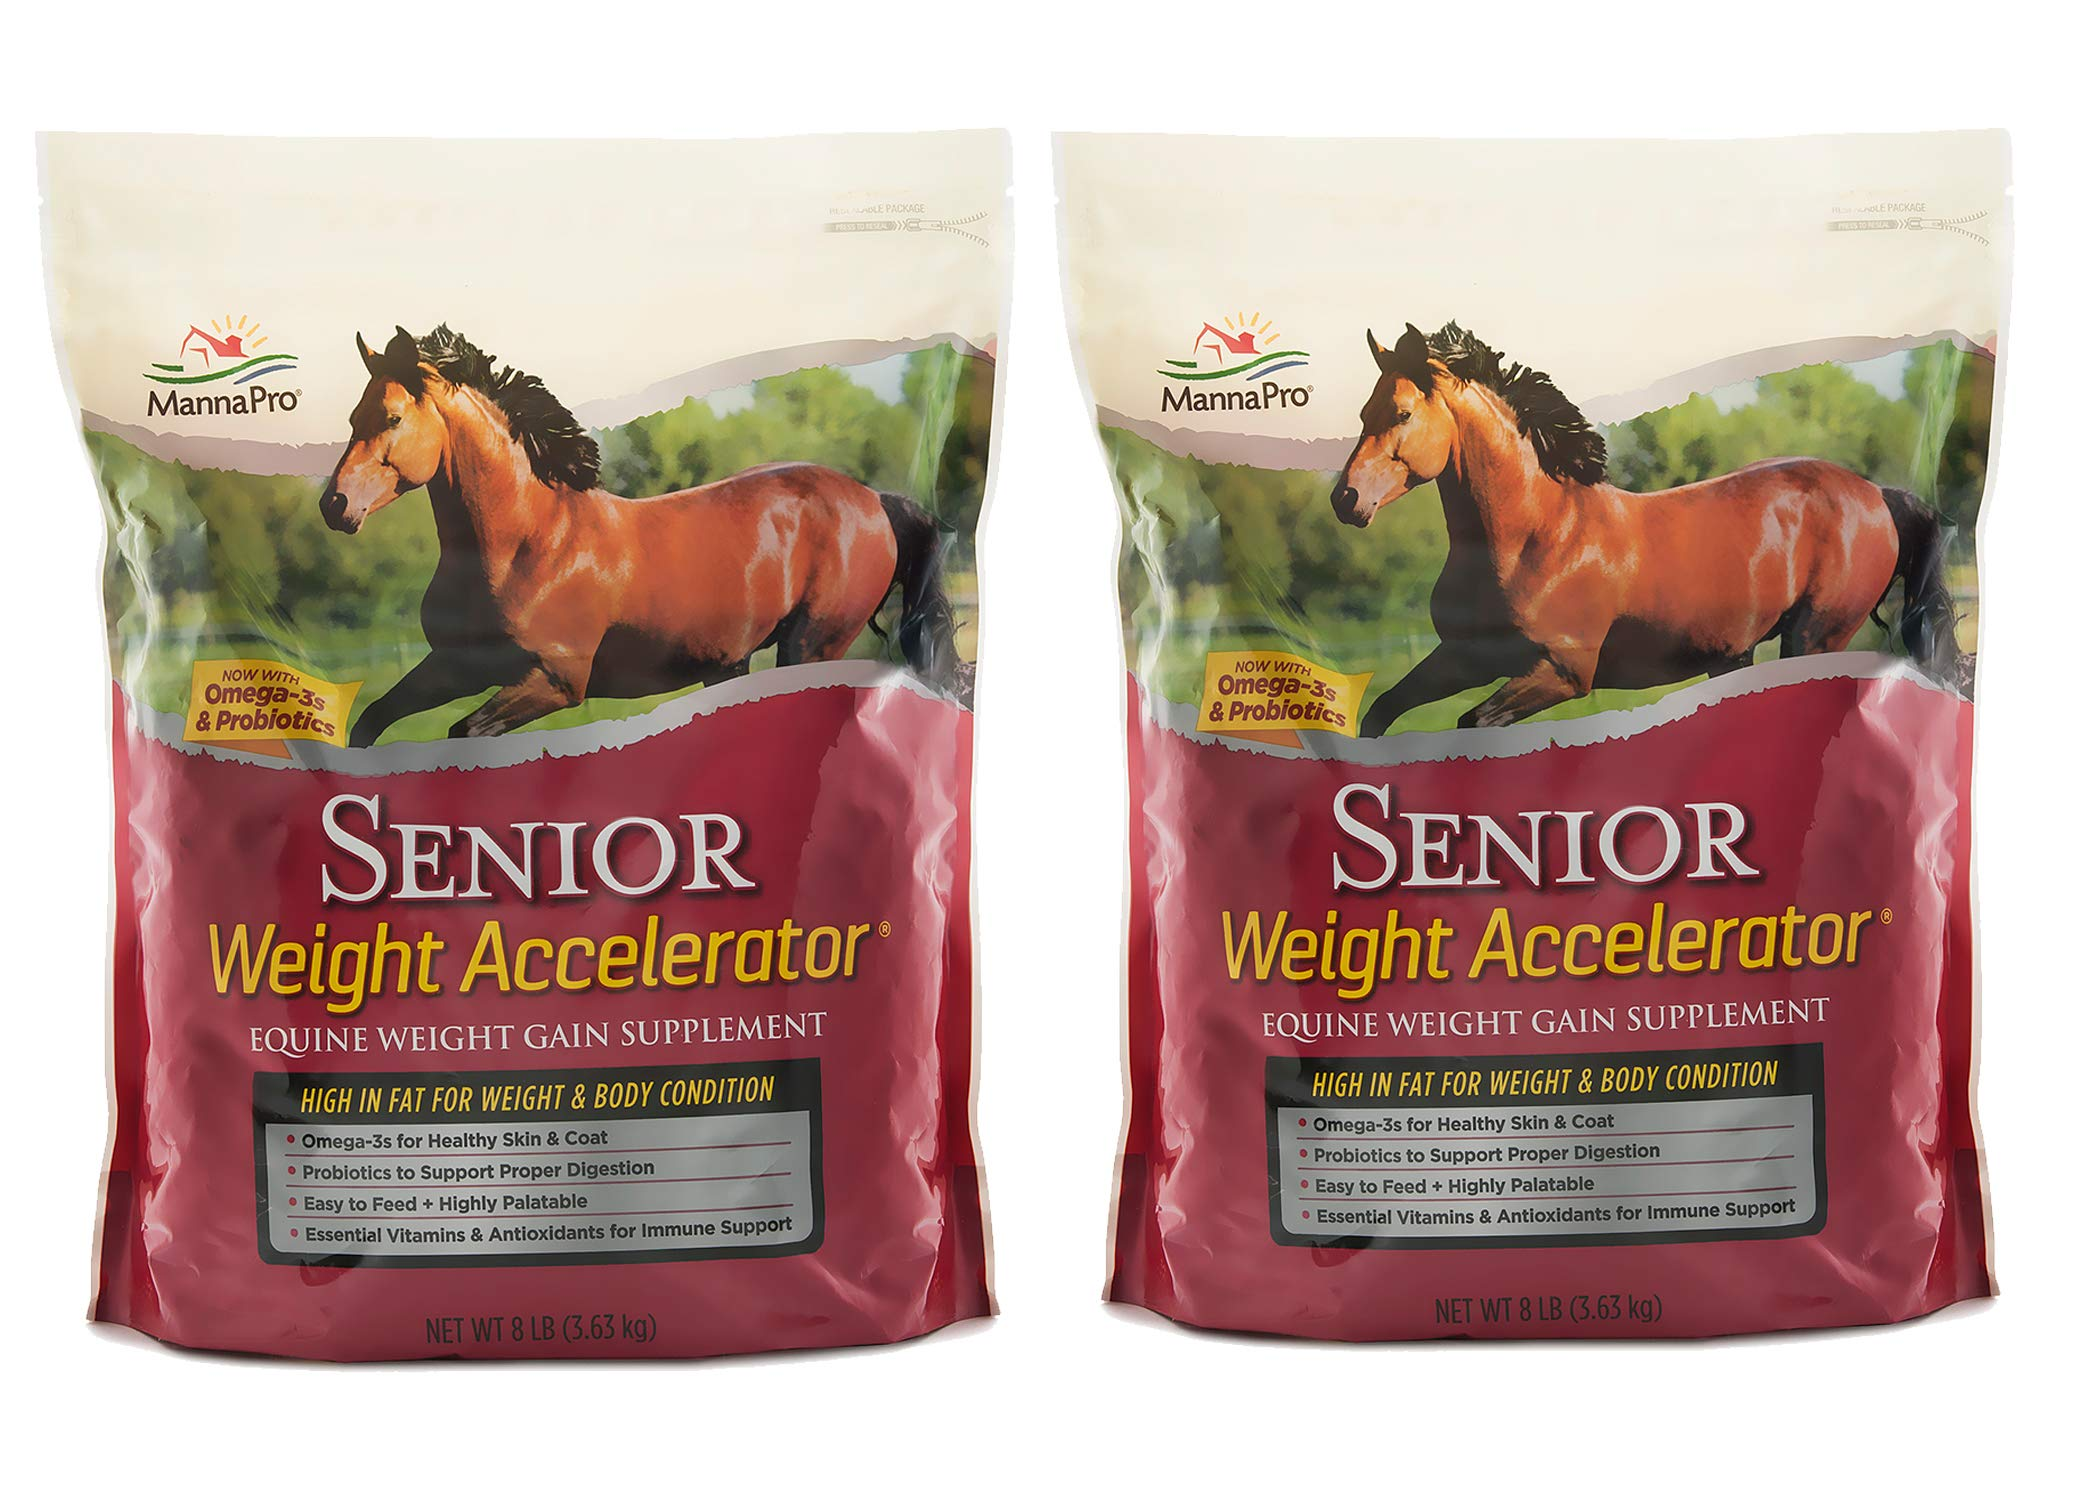 Manna Pro Senior Weight Accelerator for Horses, 8 lb 1